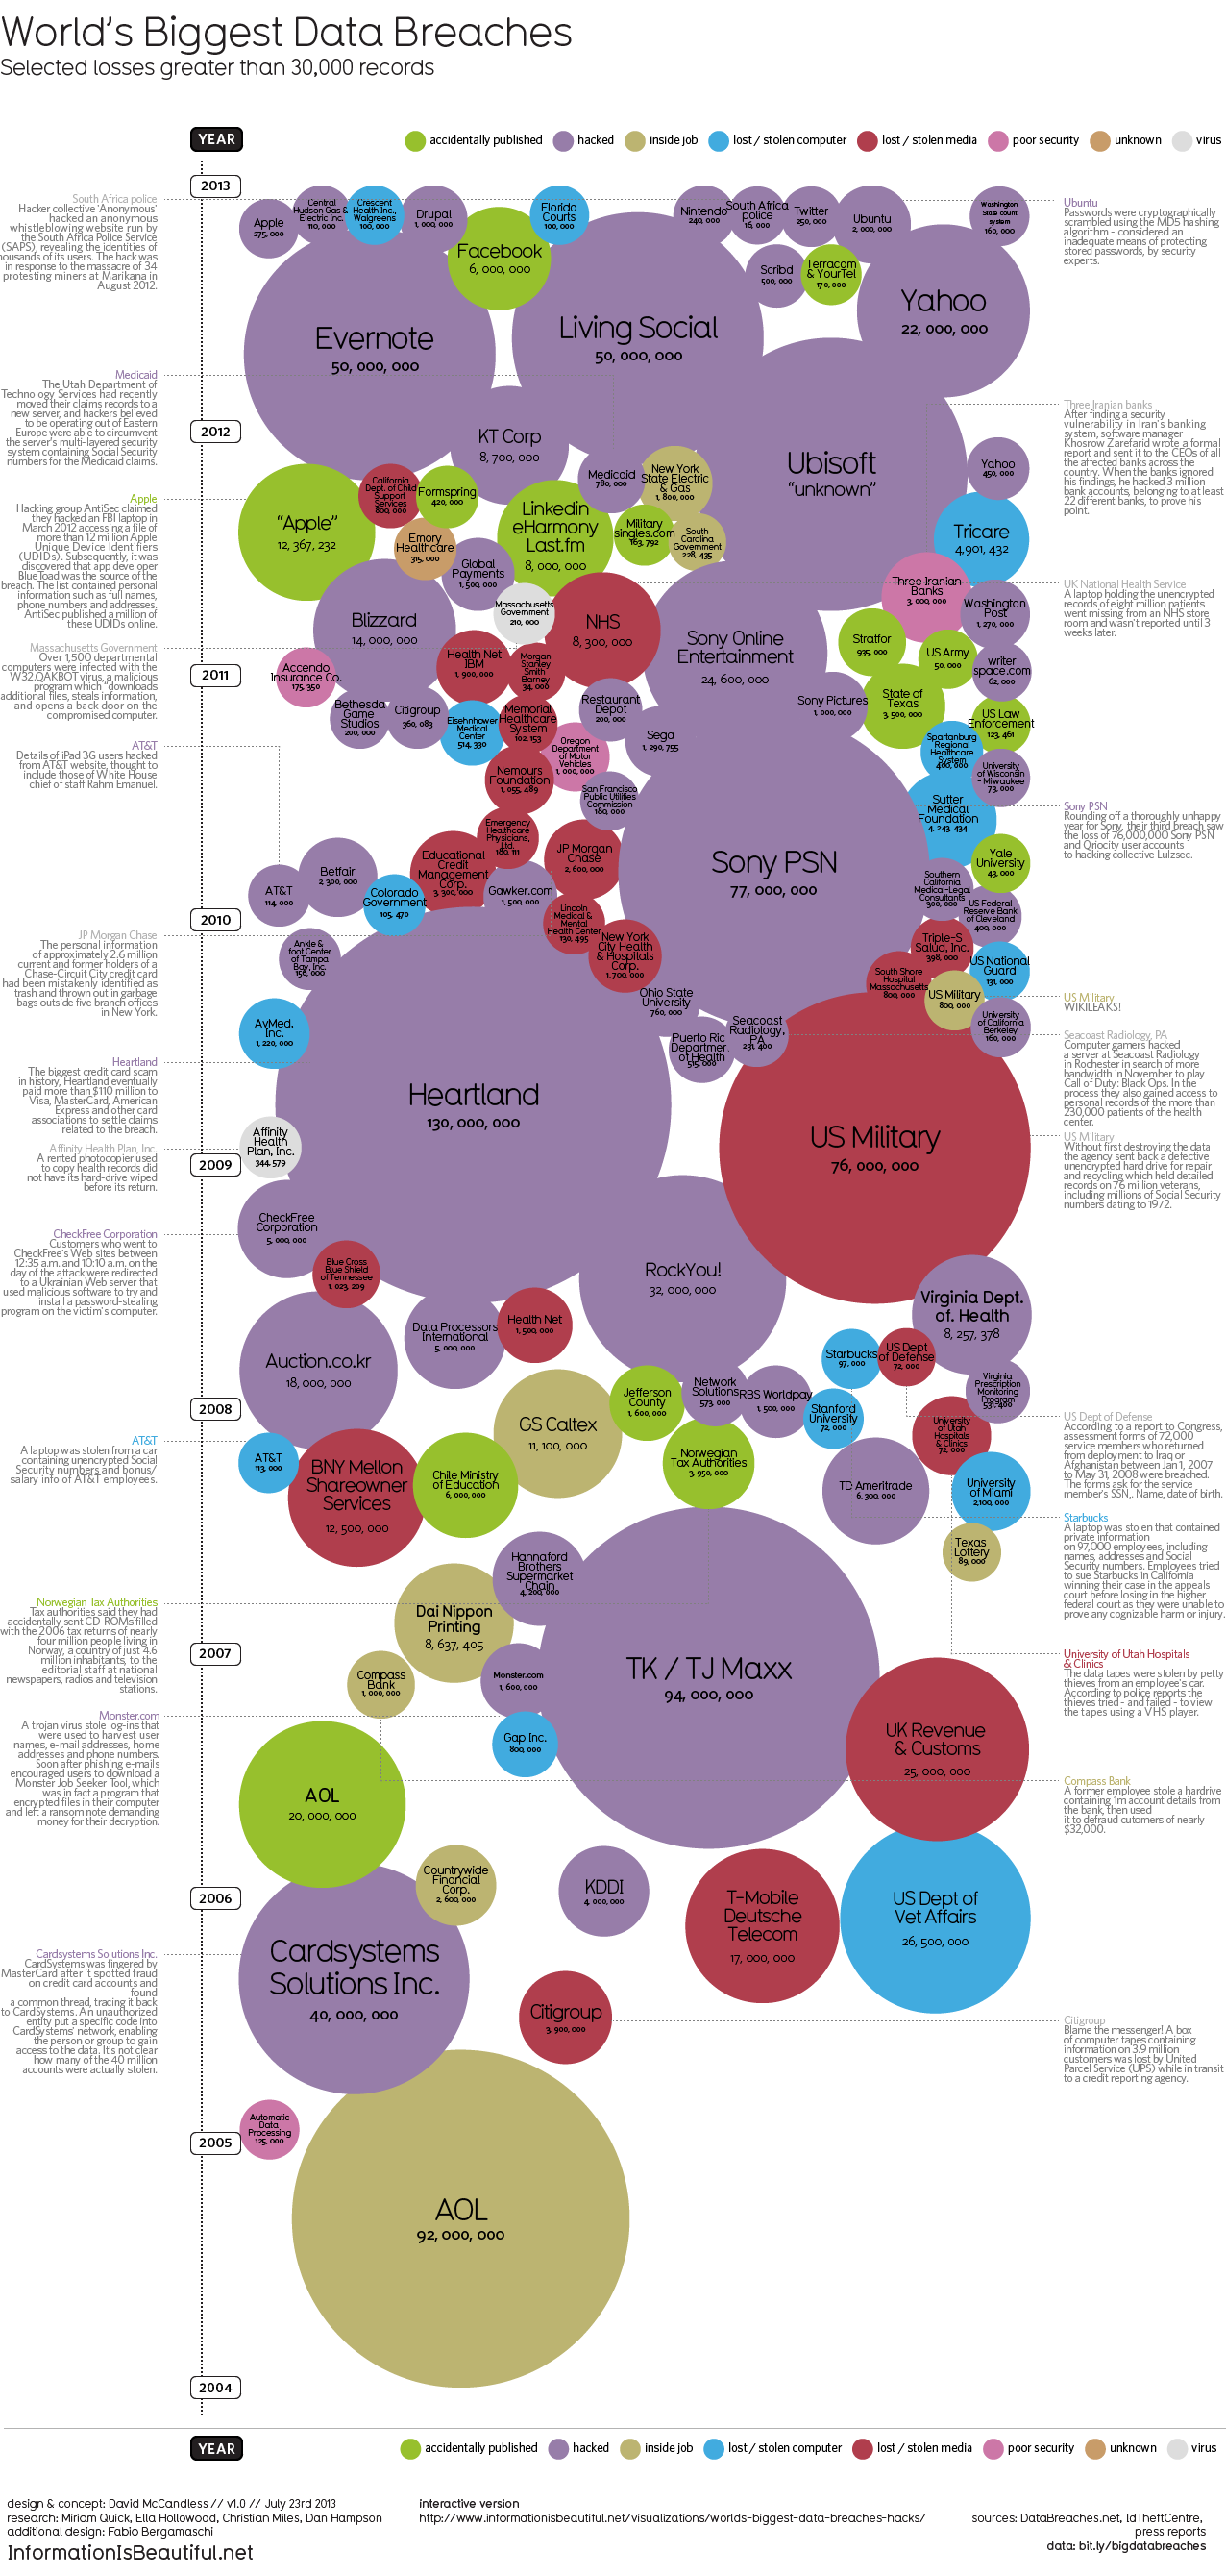 World's Biggest Data Breaches Visualization